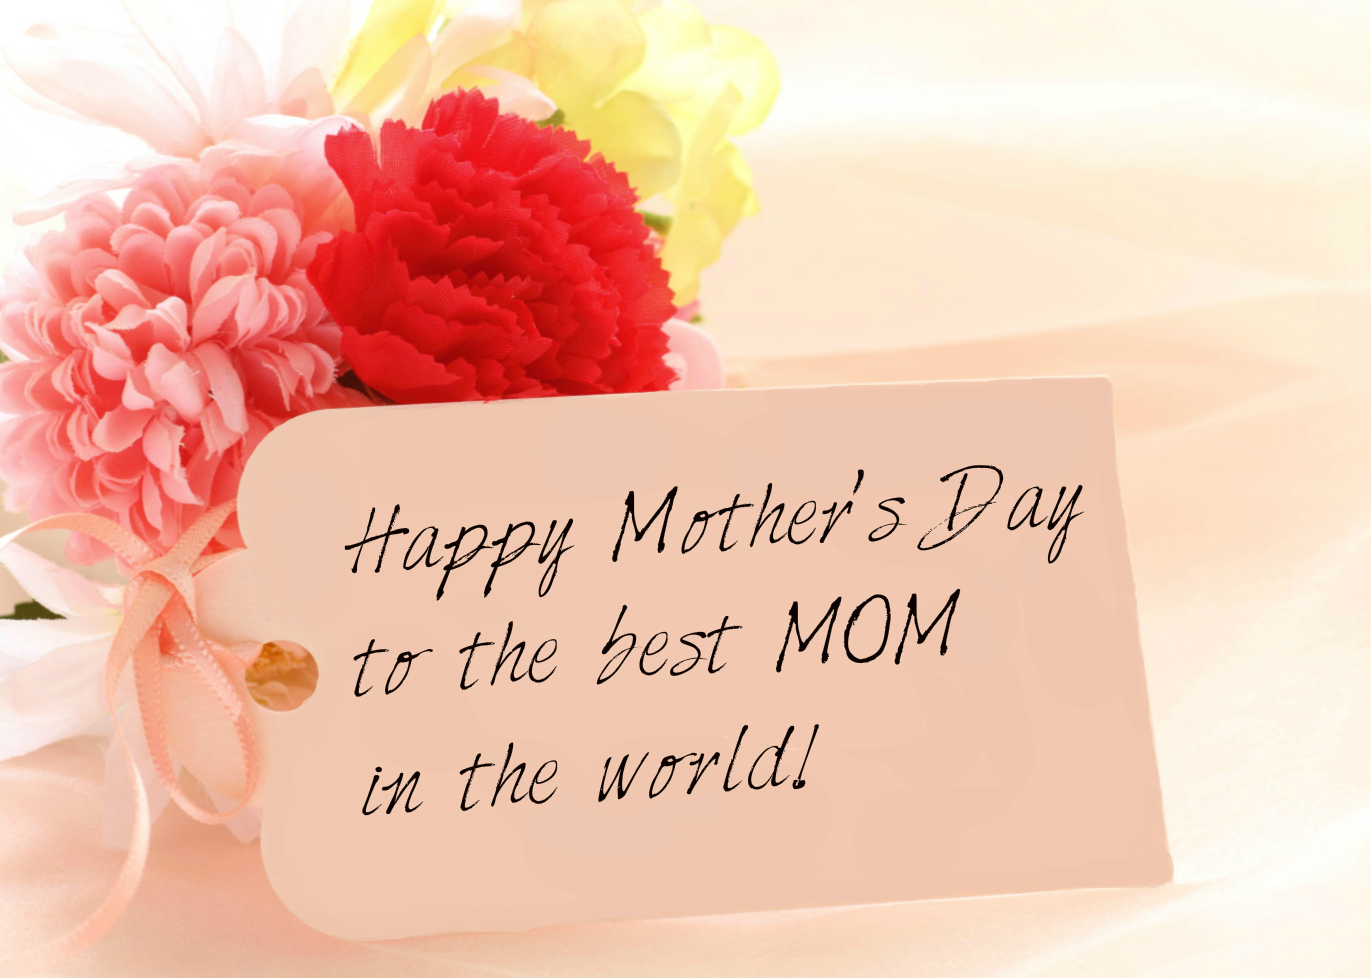 Sweet Message For Mother S Day